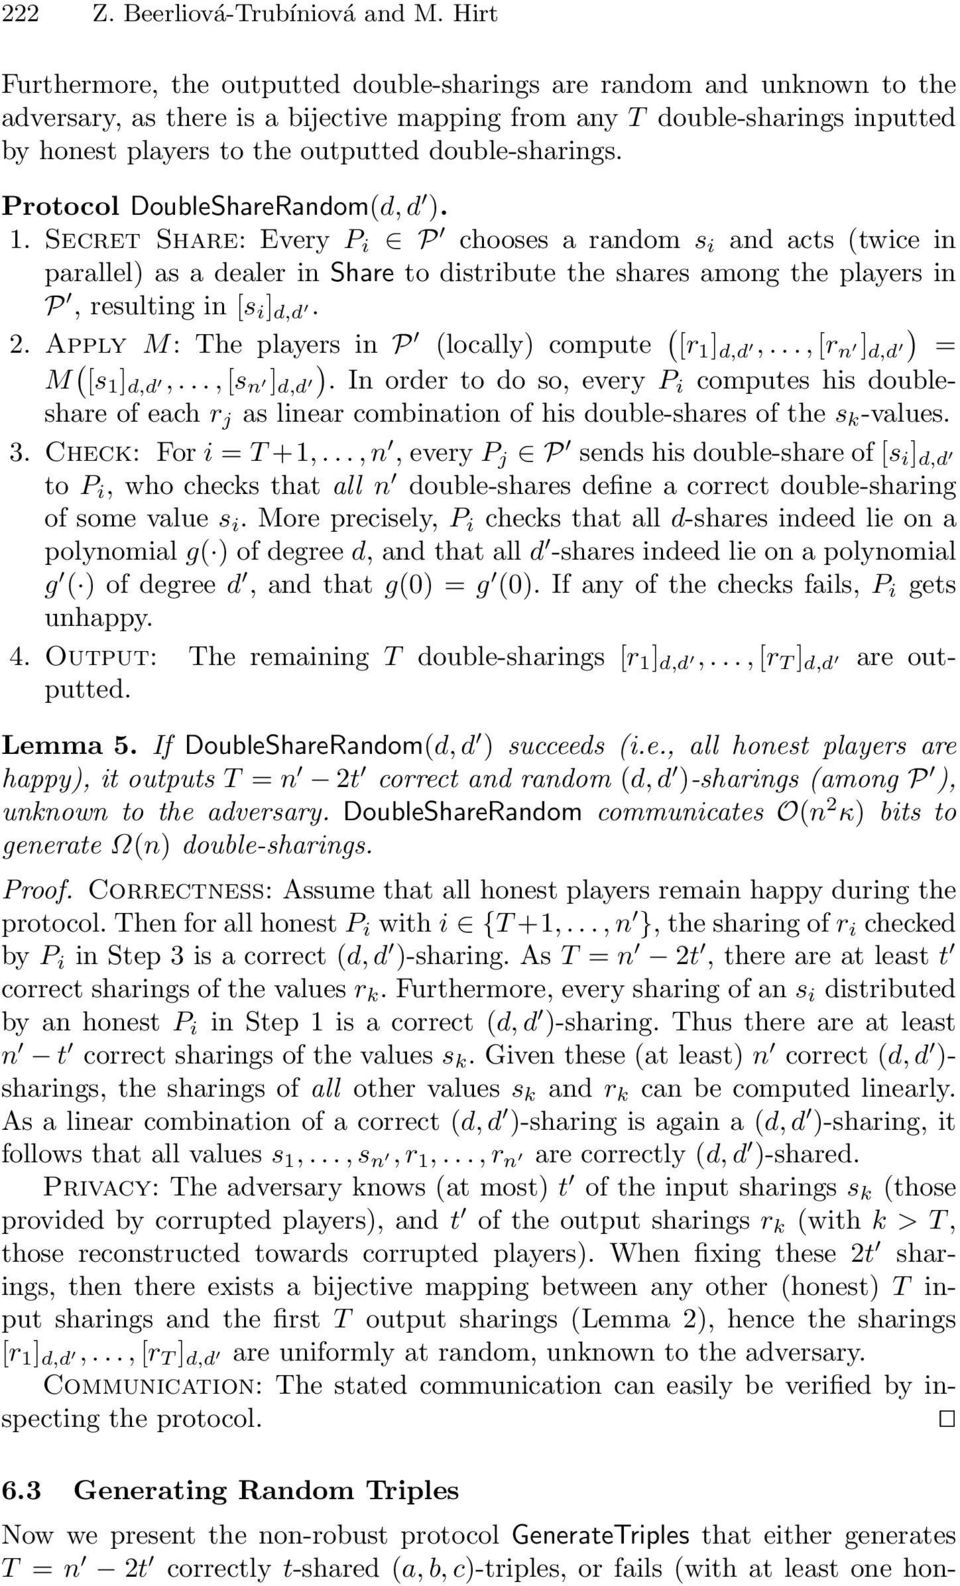 double-sharings. Lemma 5. If DoubleShareRandom(d, d ) succeeds (i.e., all honest players are happy), it outputs T = n 2t correct and random (d, d )-sharings (among P ), unnown to the adversary.